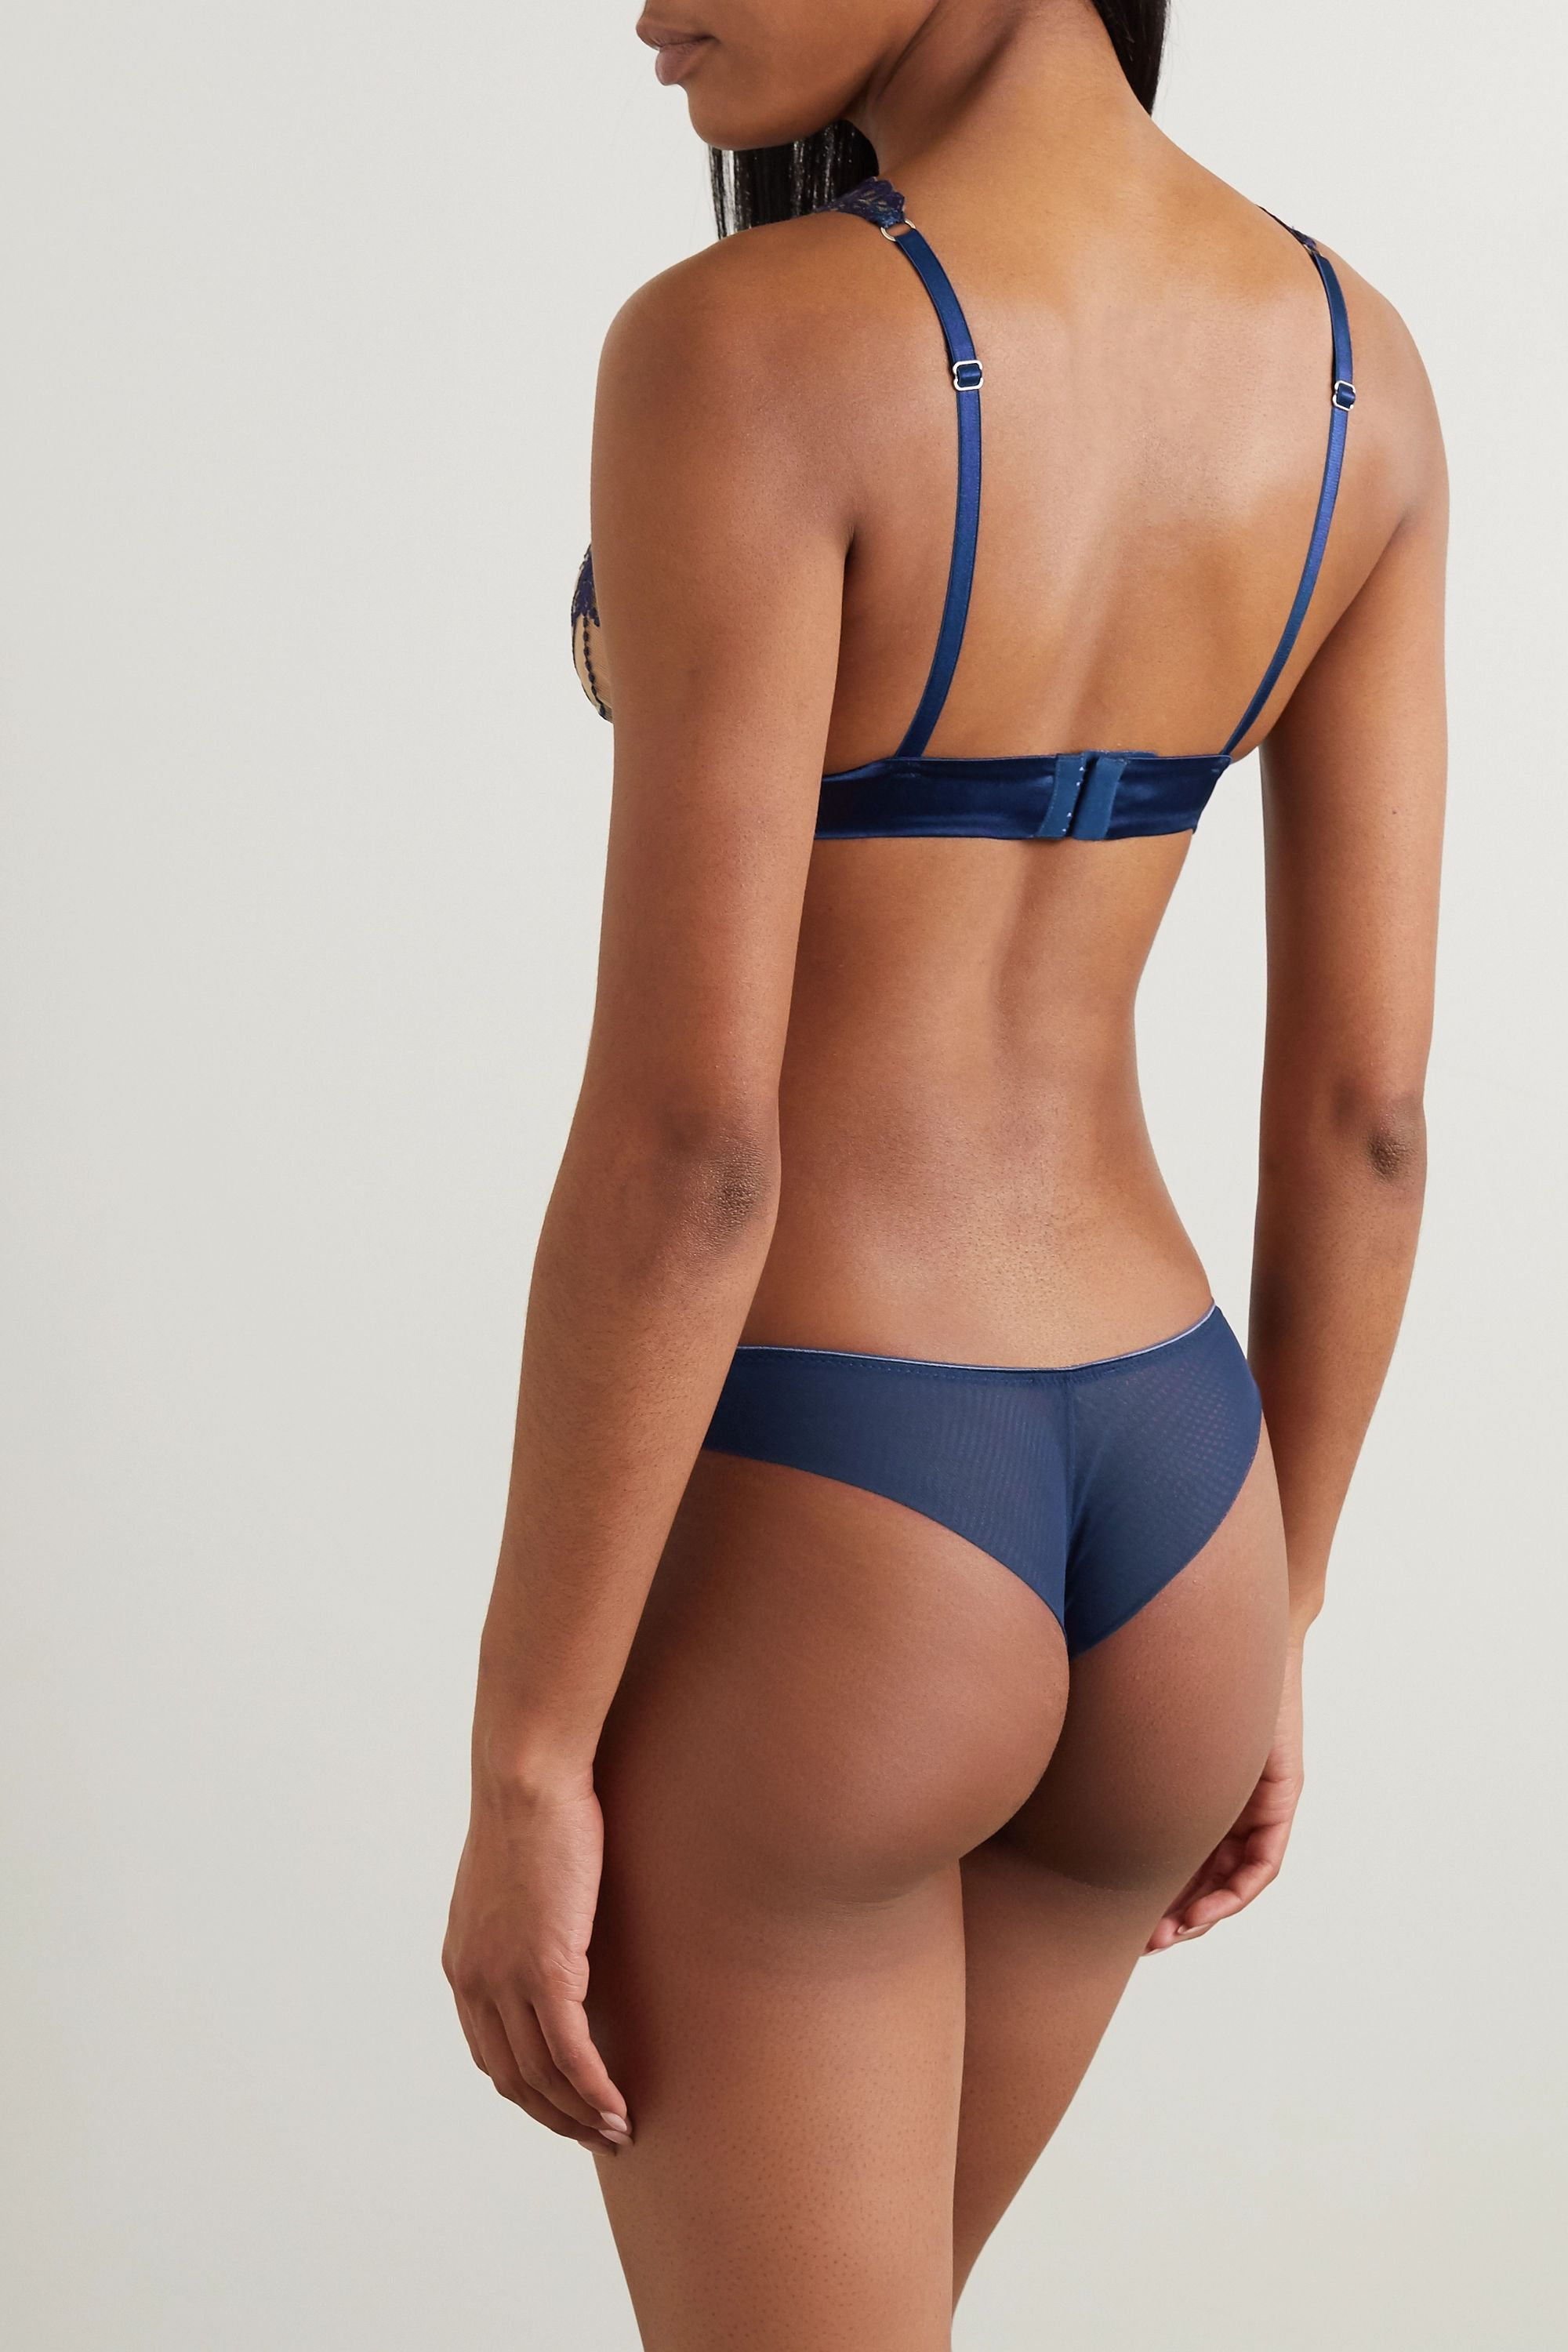 I.D. Sarrieri Moonlight embroidered tulle and satin thong